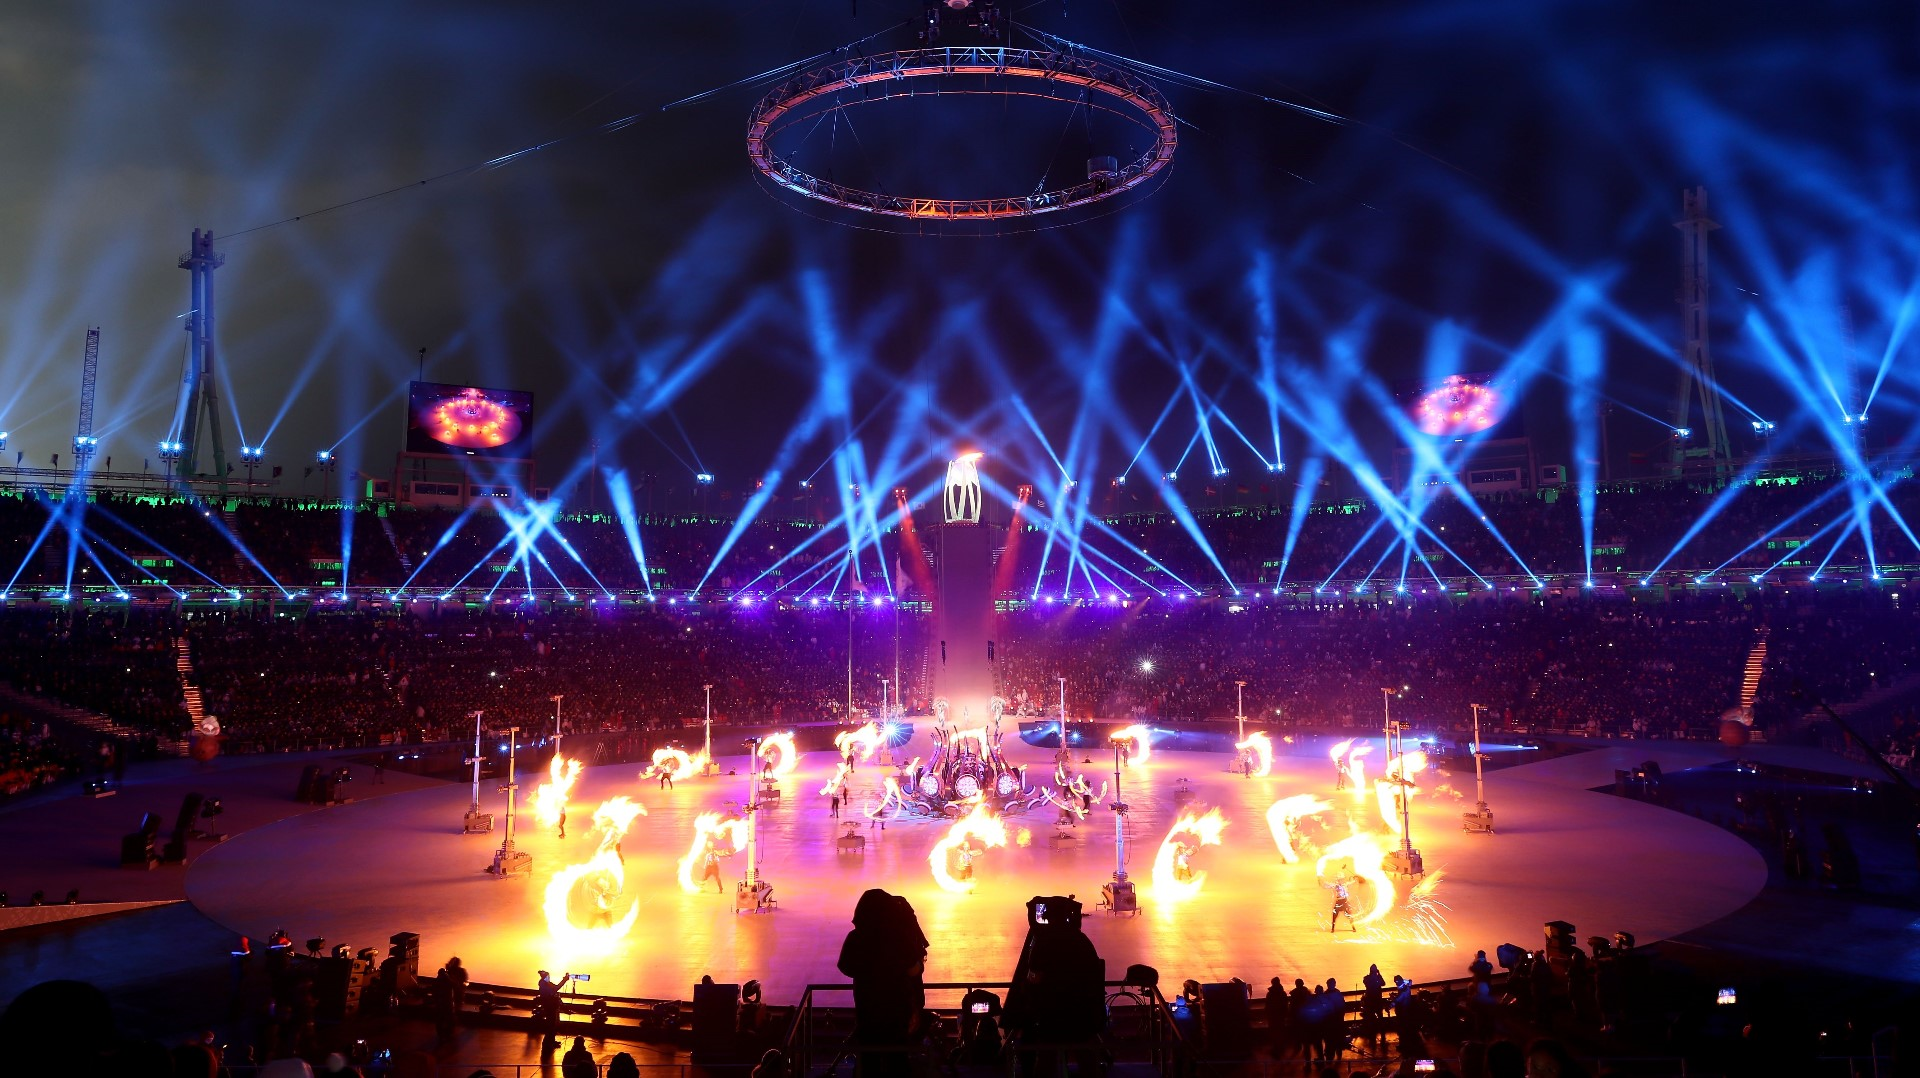 Image result for 2018 pyeongchang winter olympics opening ceremony